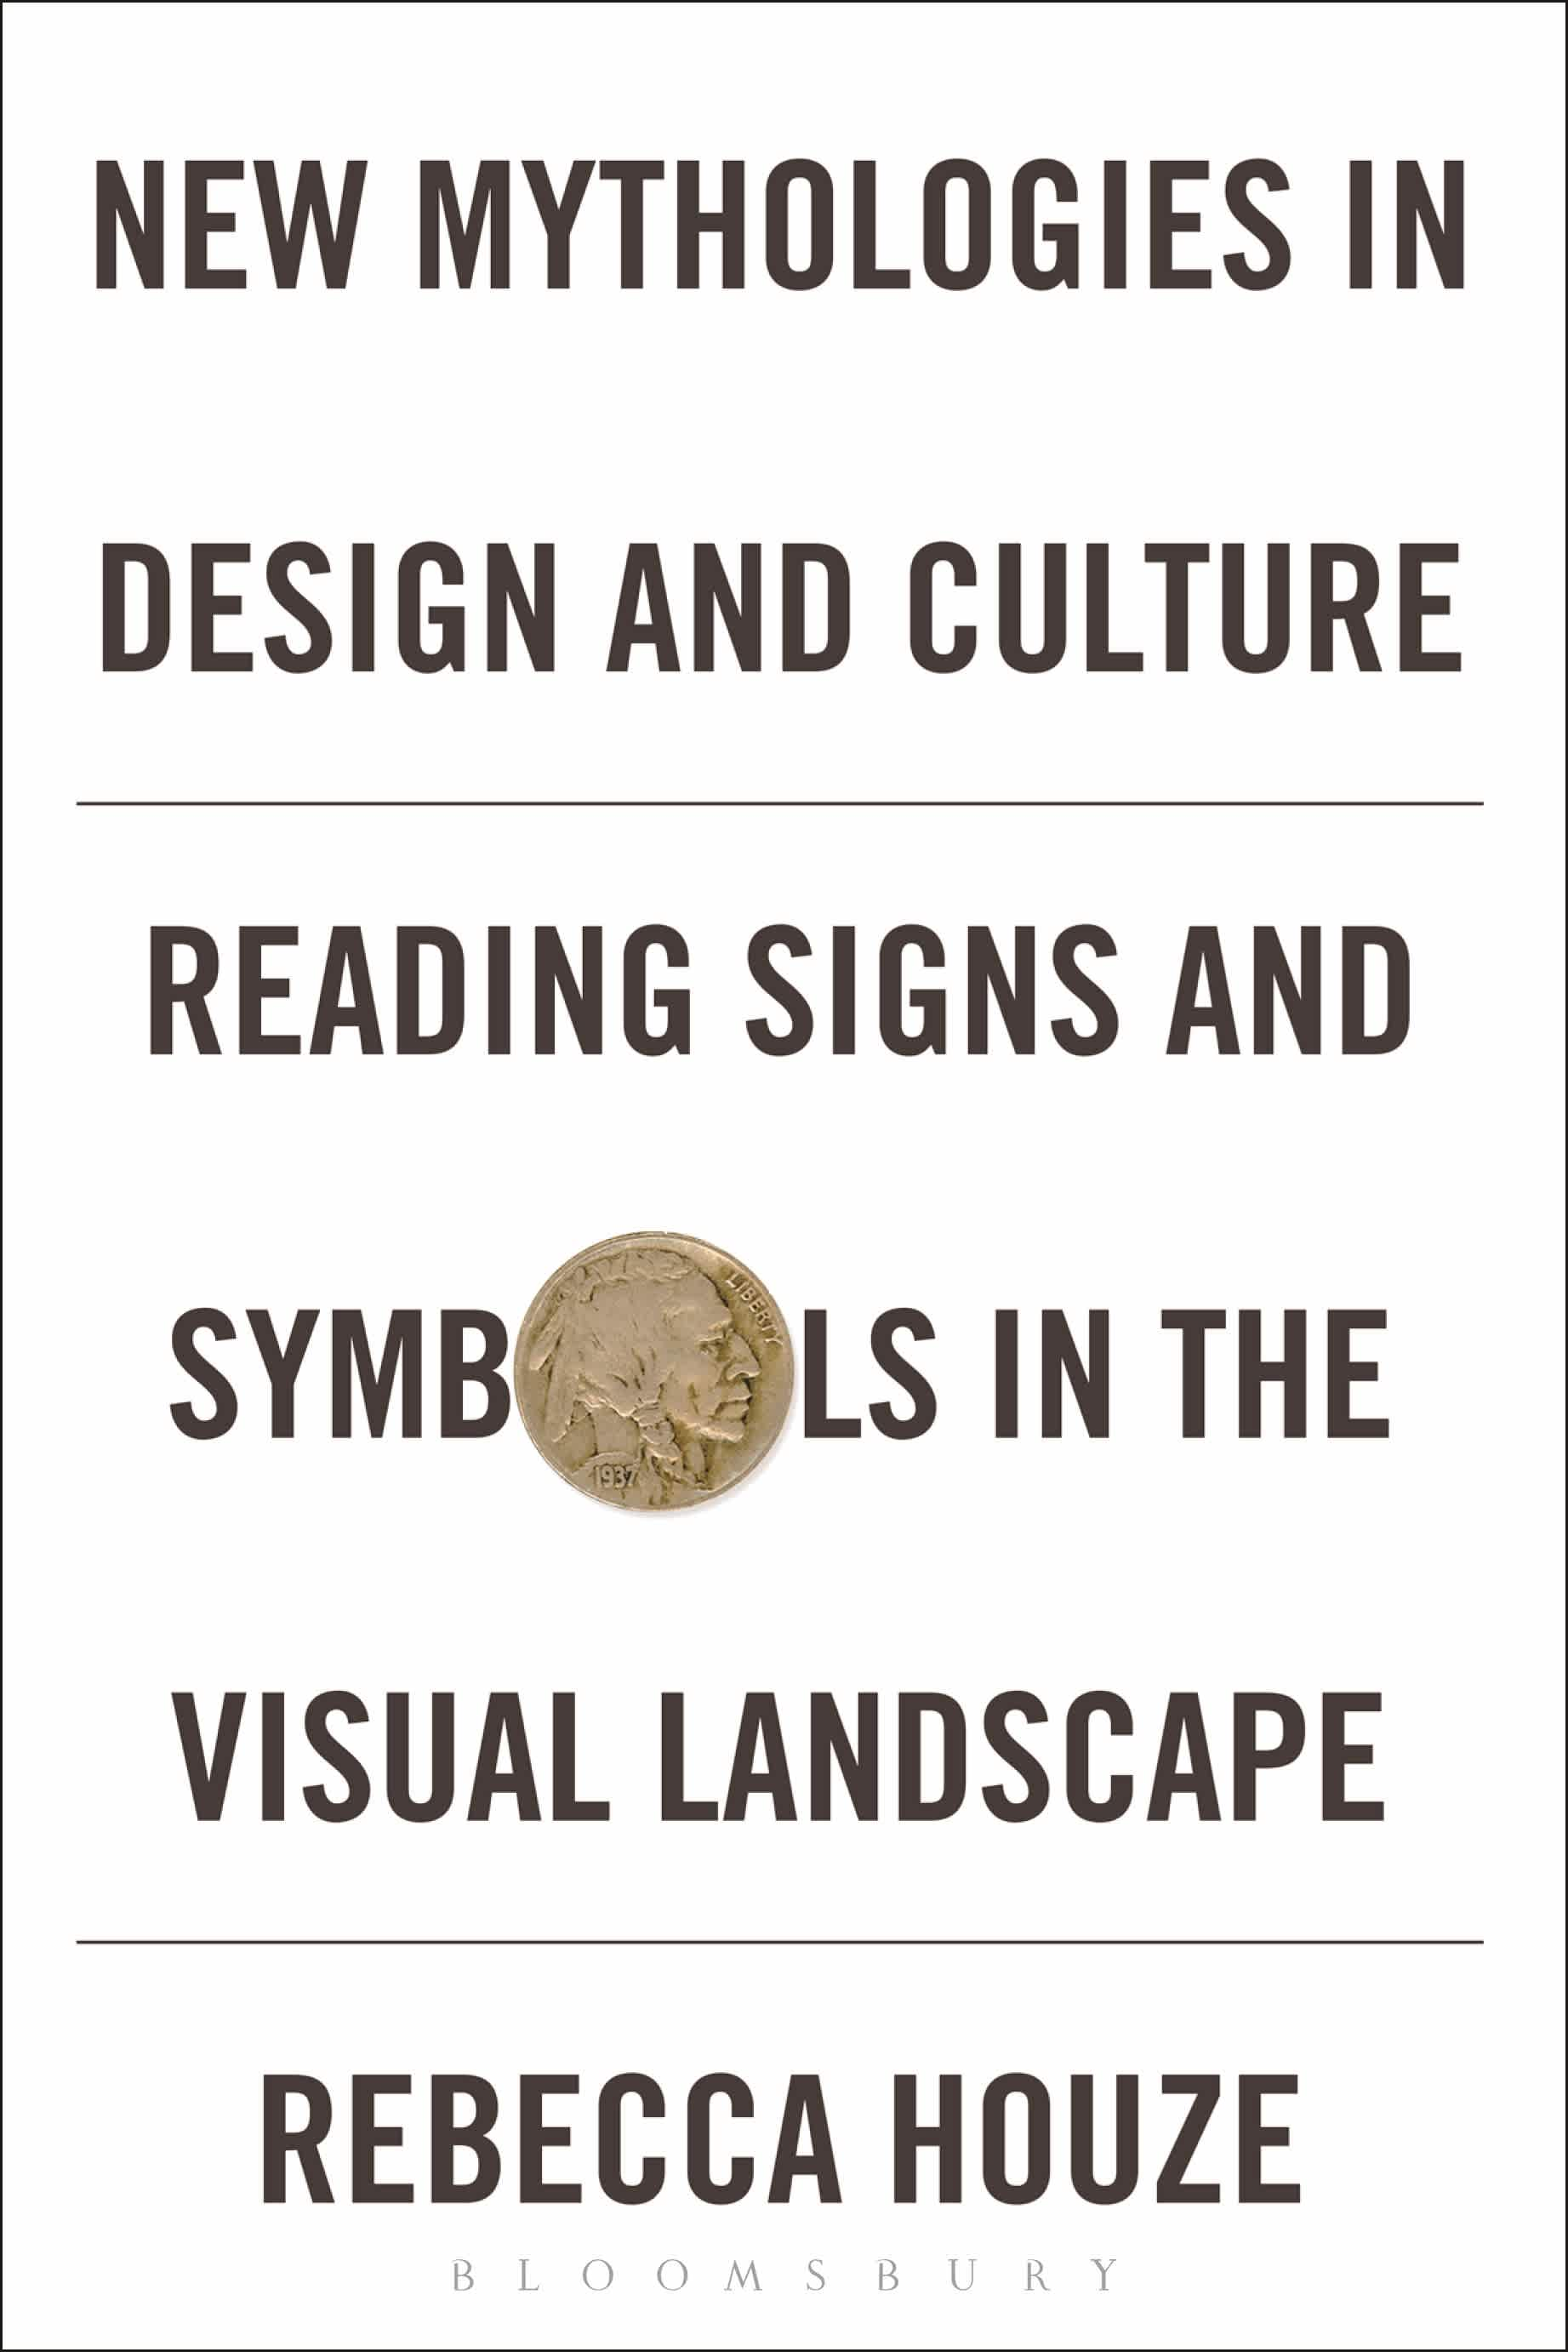 New Mythologies in Design and Culture